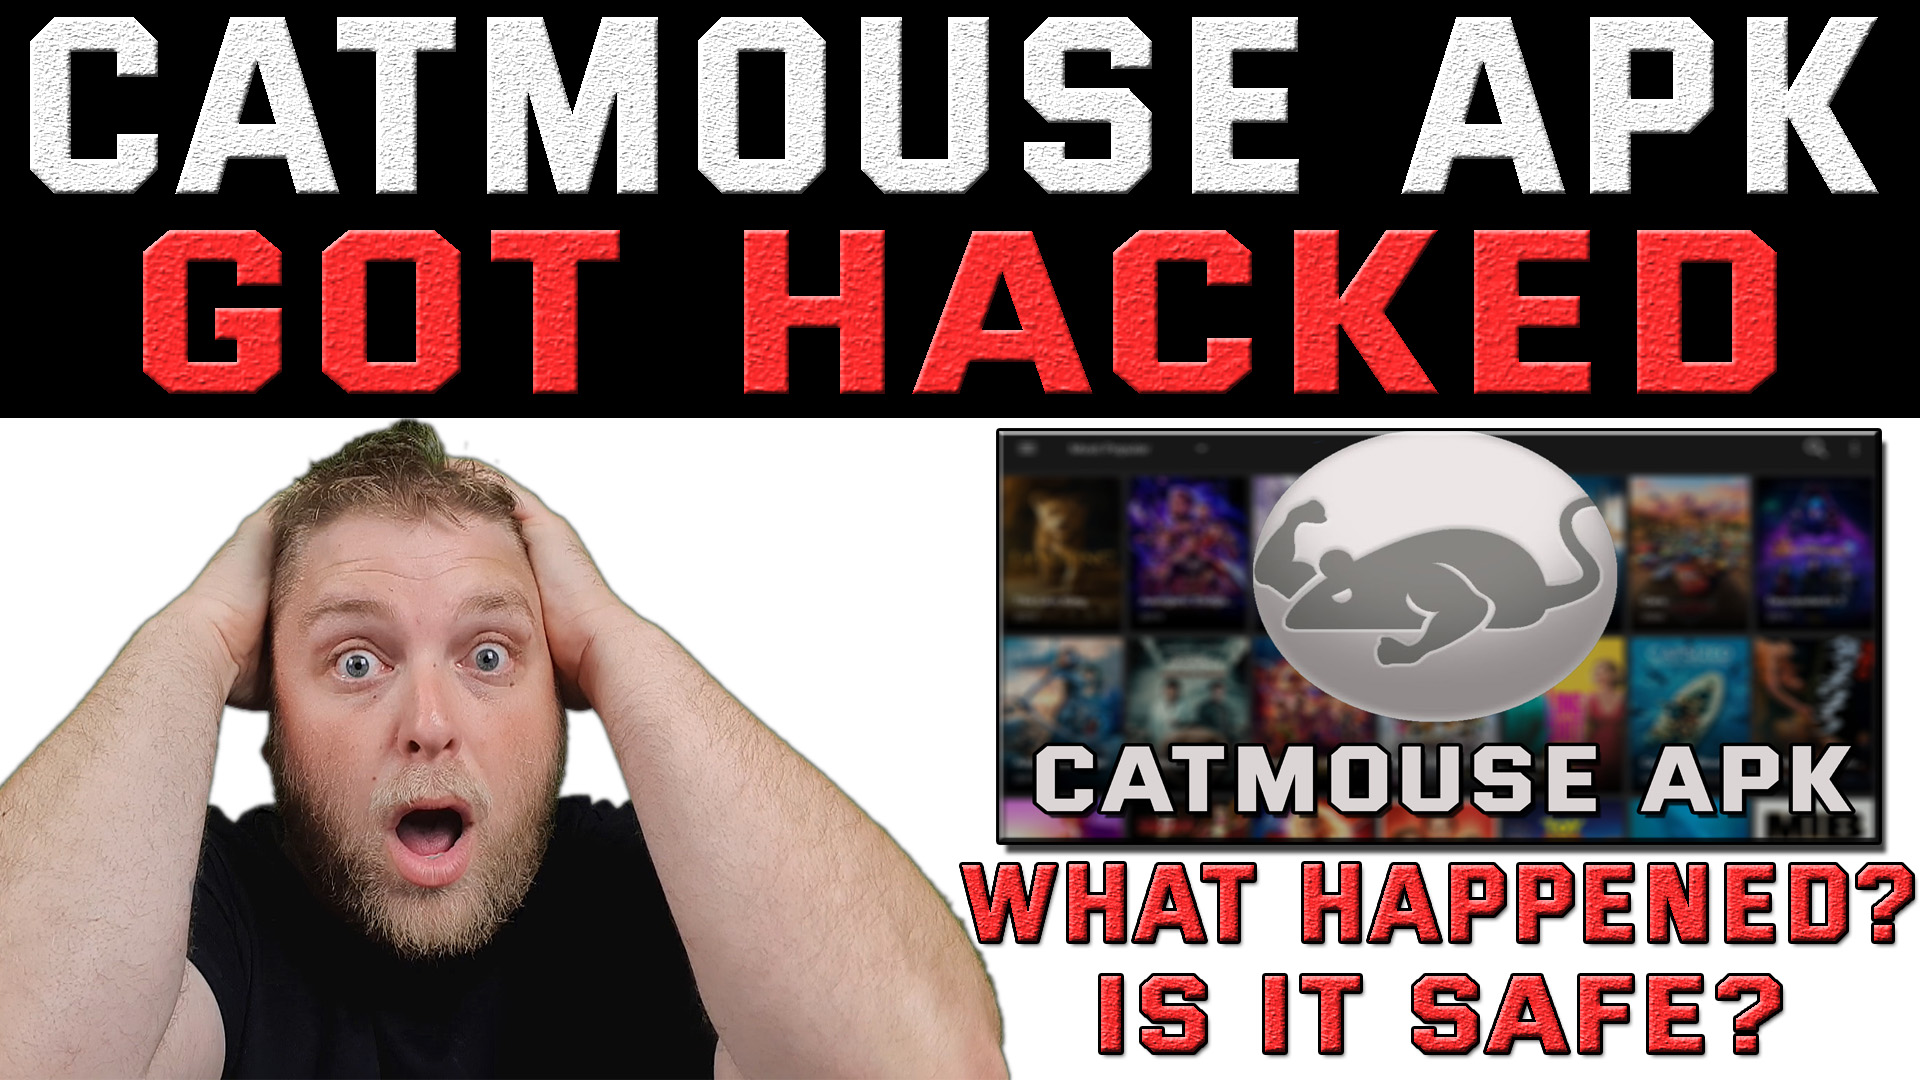 Catmouse apk Hacked